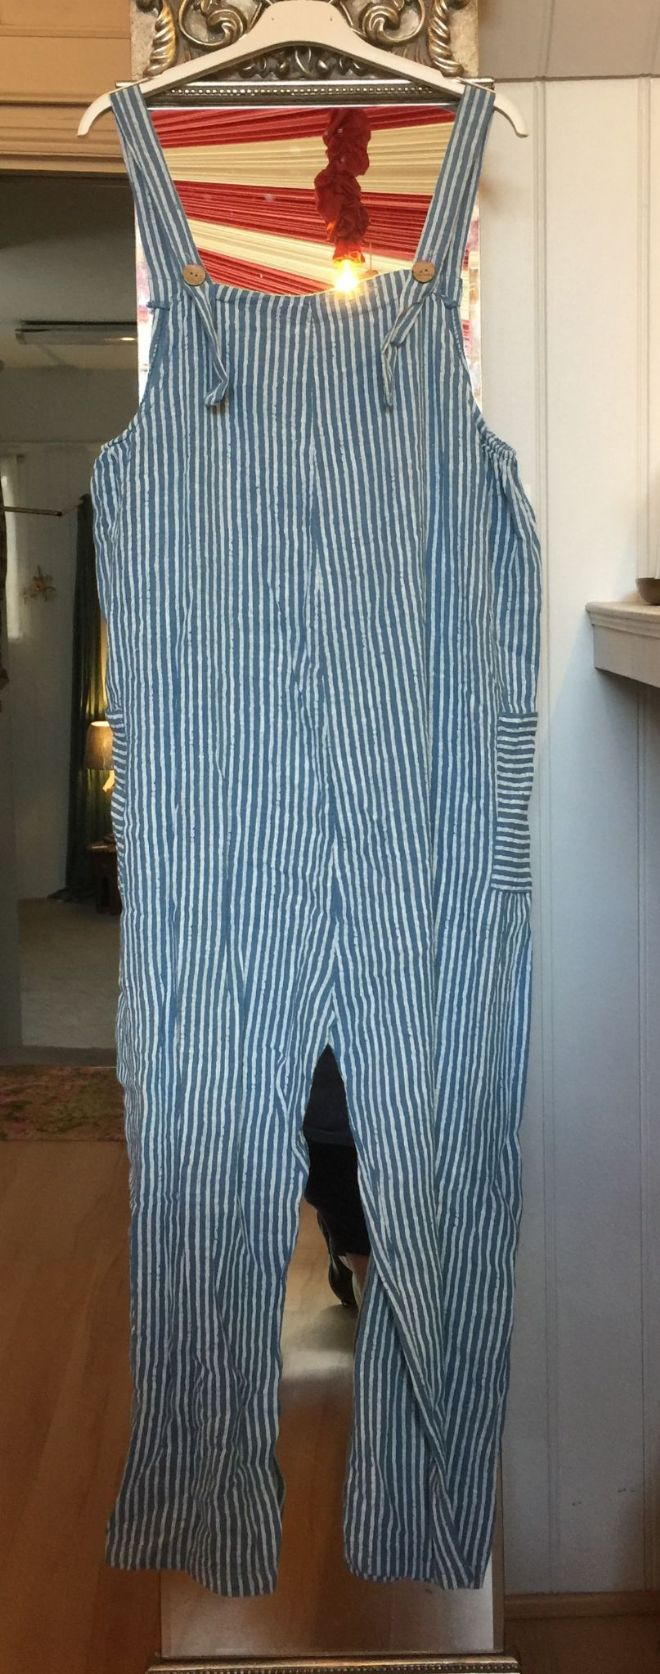 Cotton Dungarees - Stripey - Air Force Blue